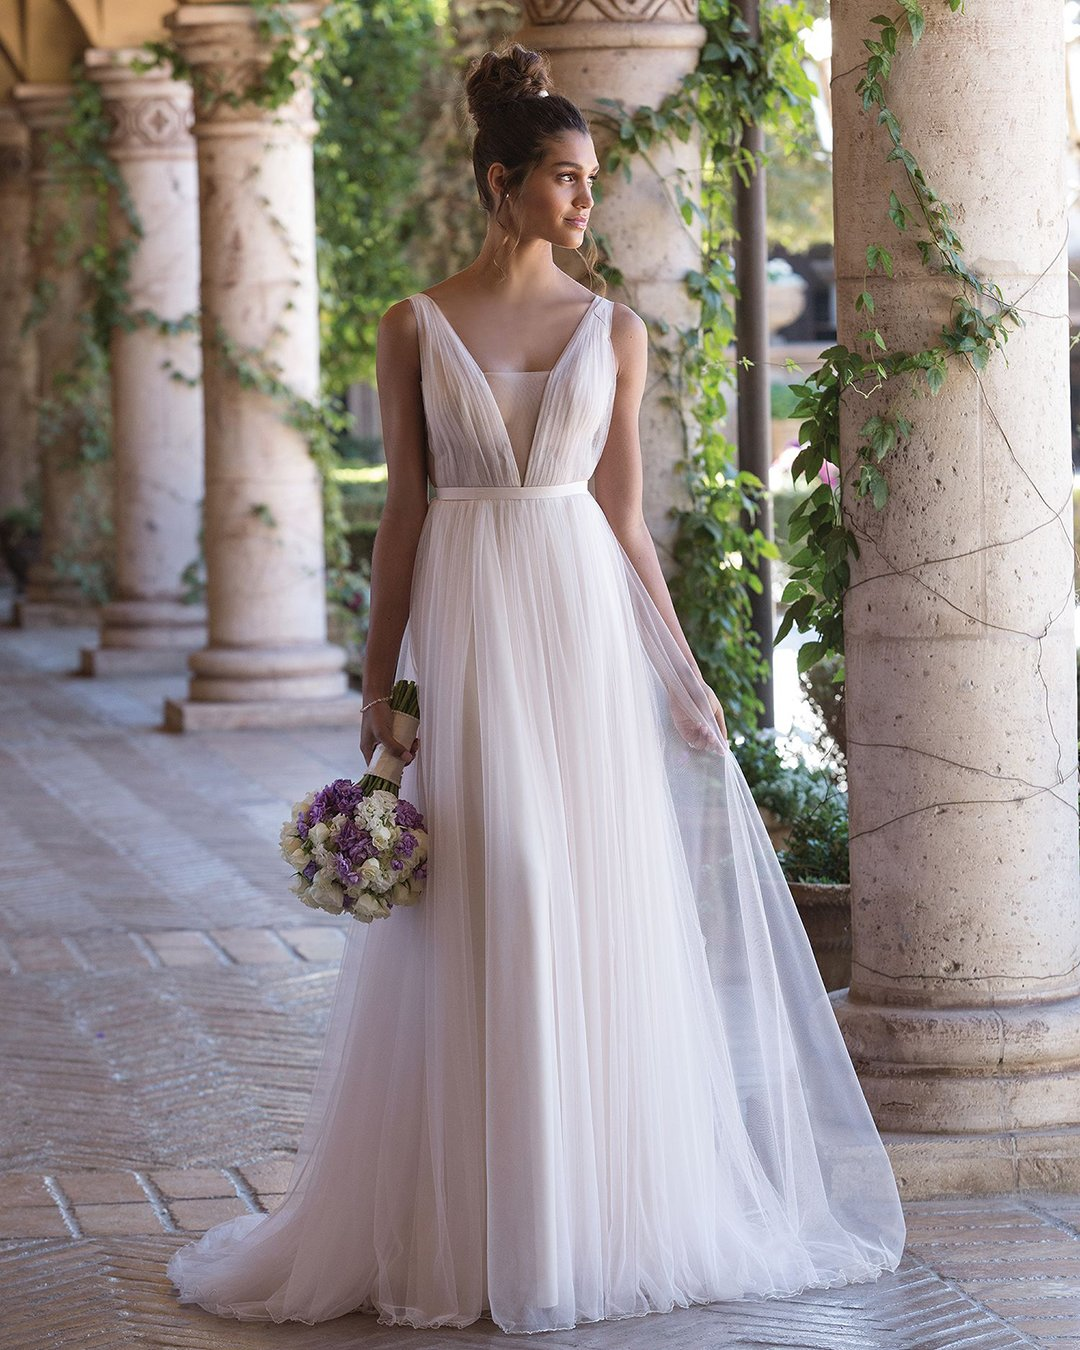 greek wedding dresses a line simple v neckline justin alexander